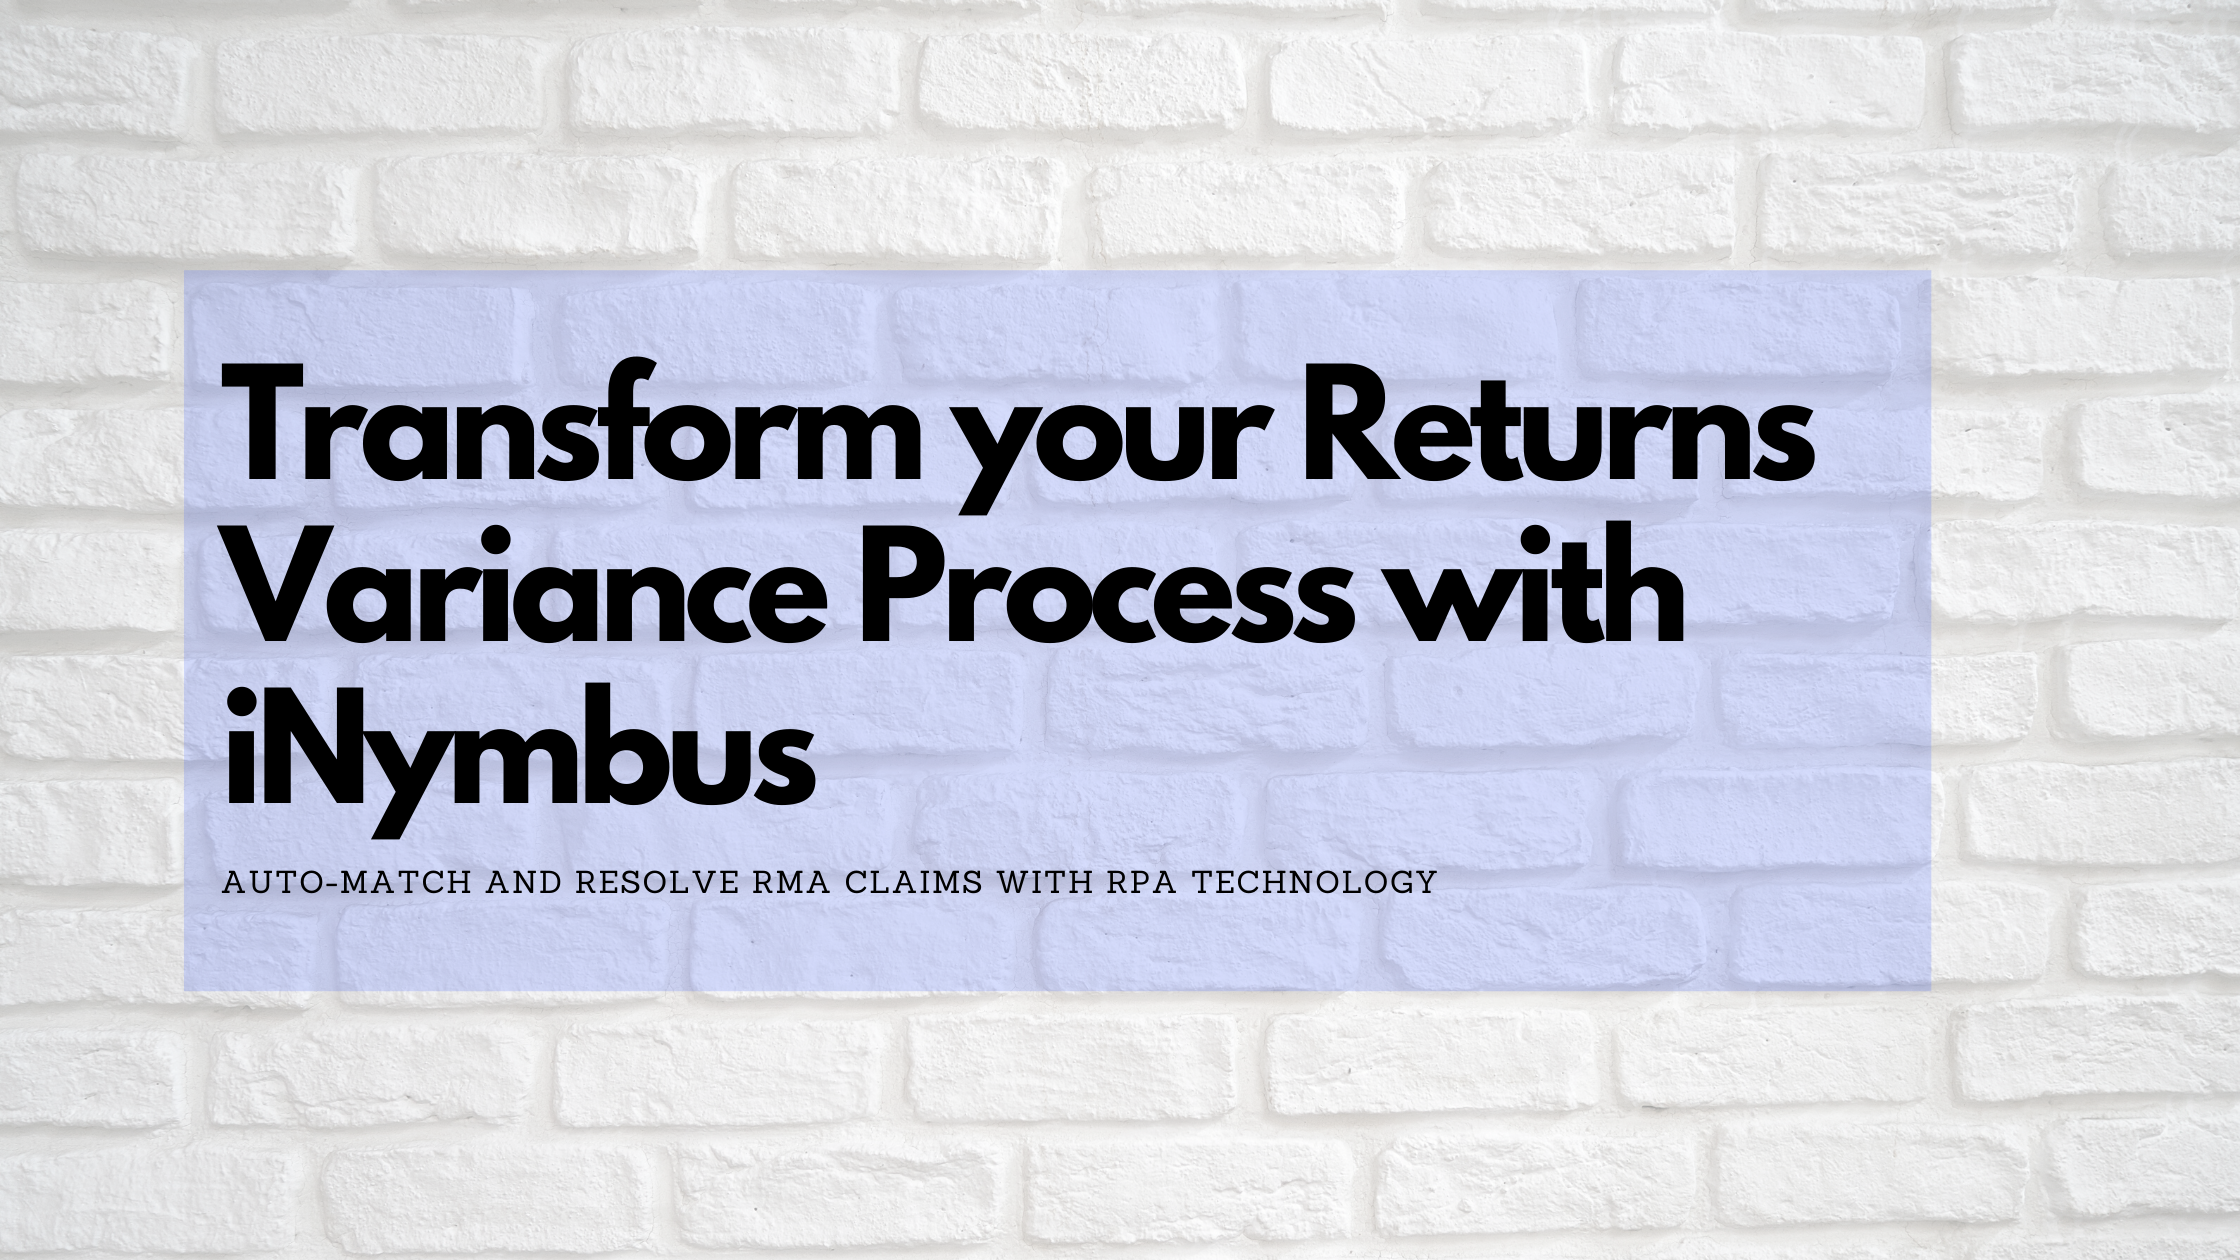 Transform your Amazon Returns Variance Process with iNymbus